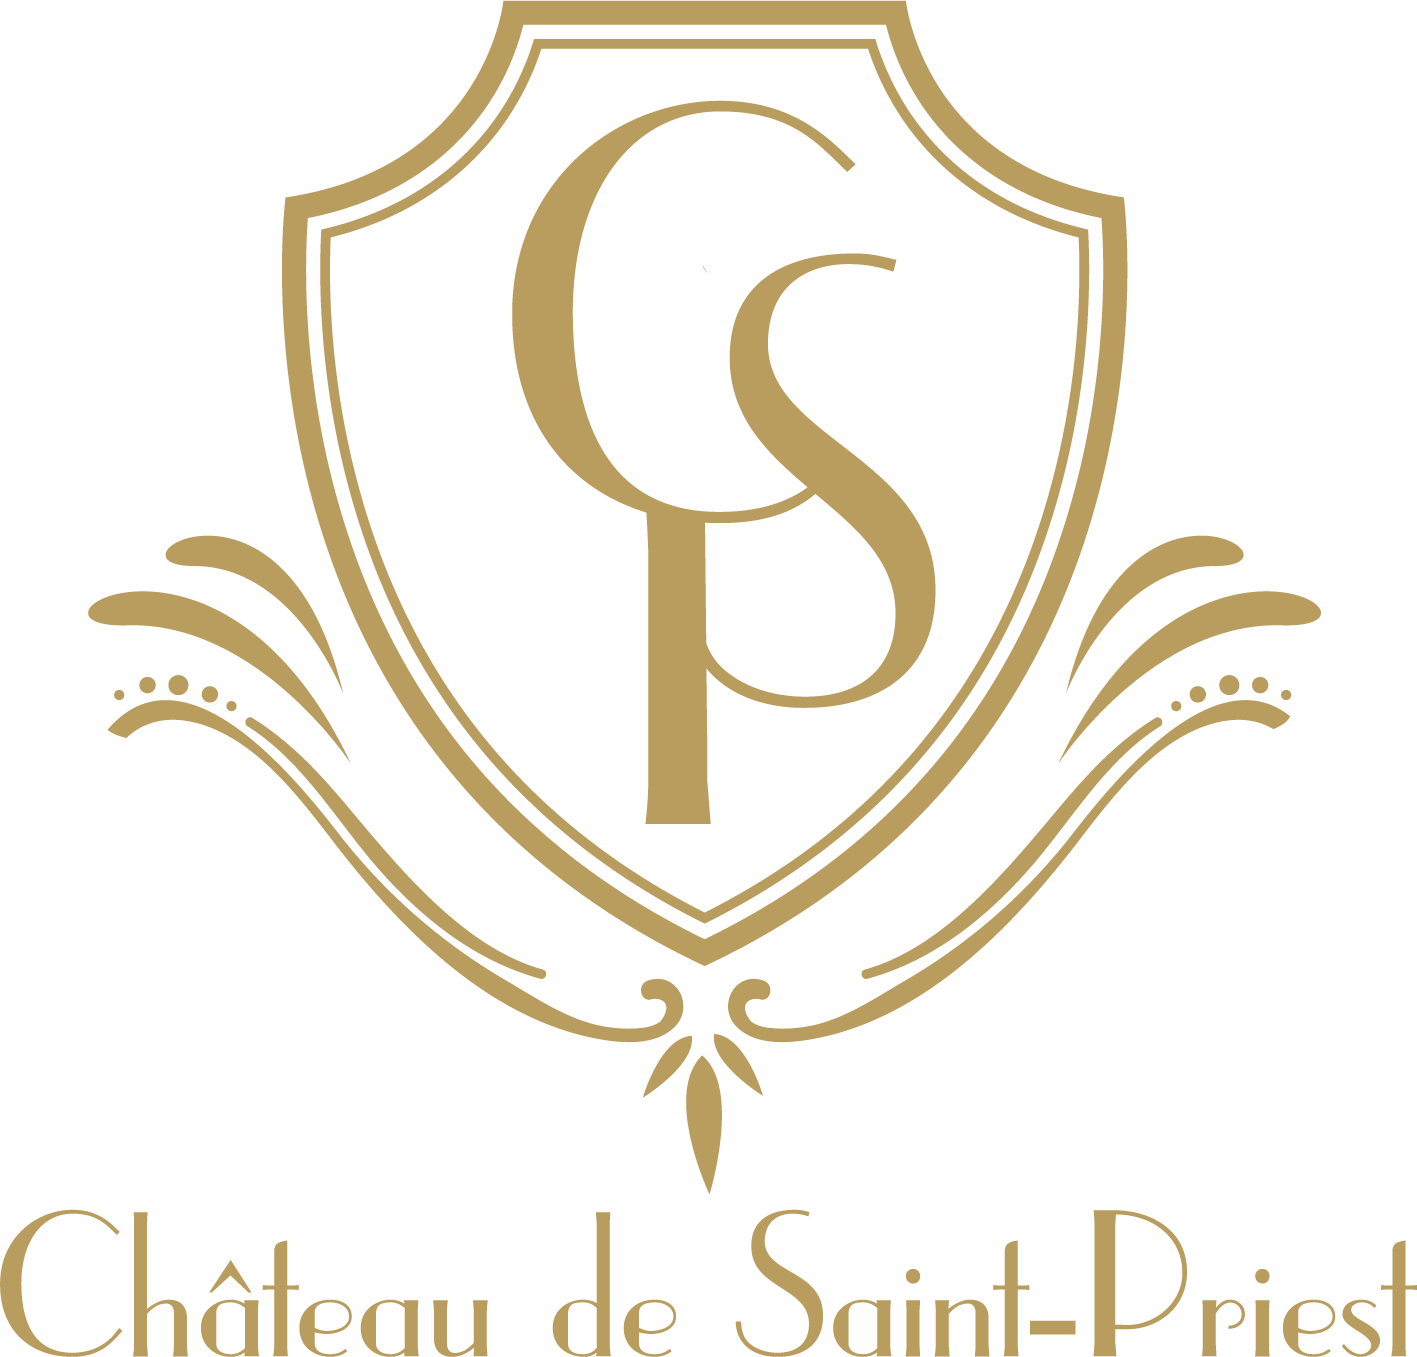 logo restaurant Chateau de Saint-Priest >à Saint-Priest